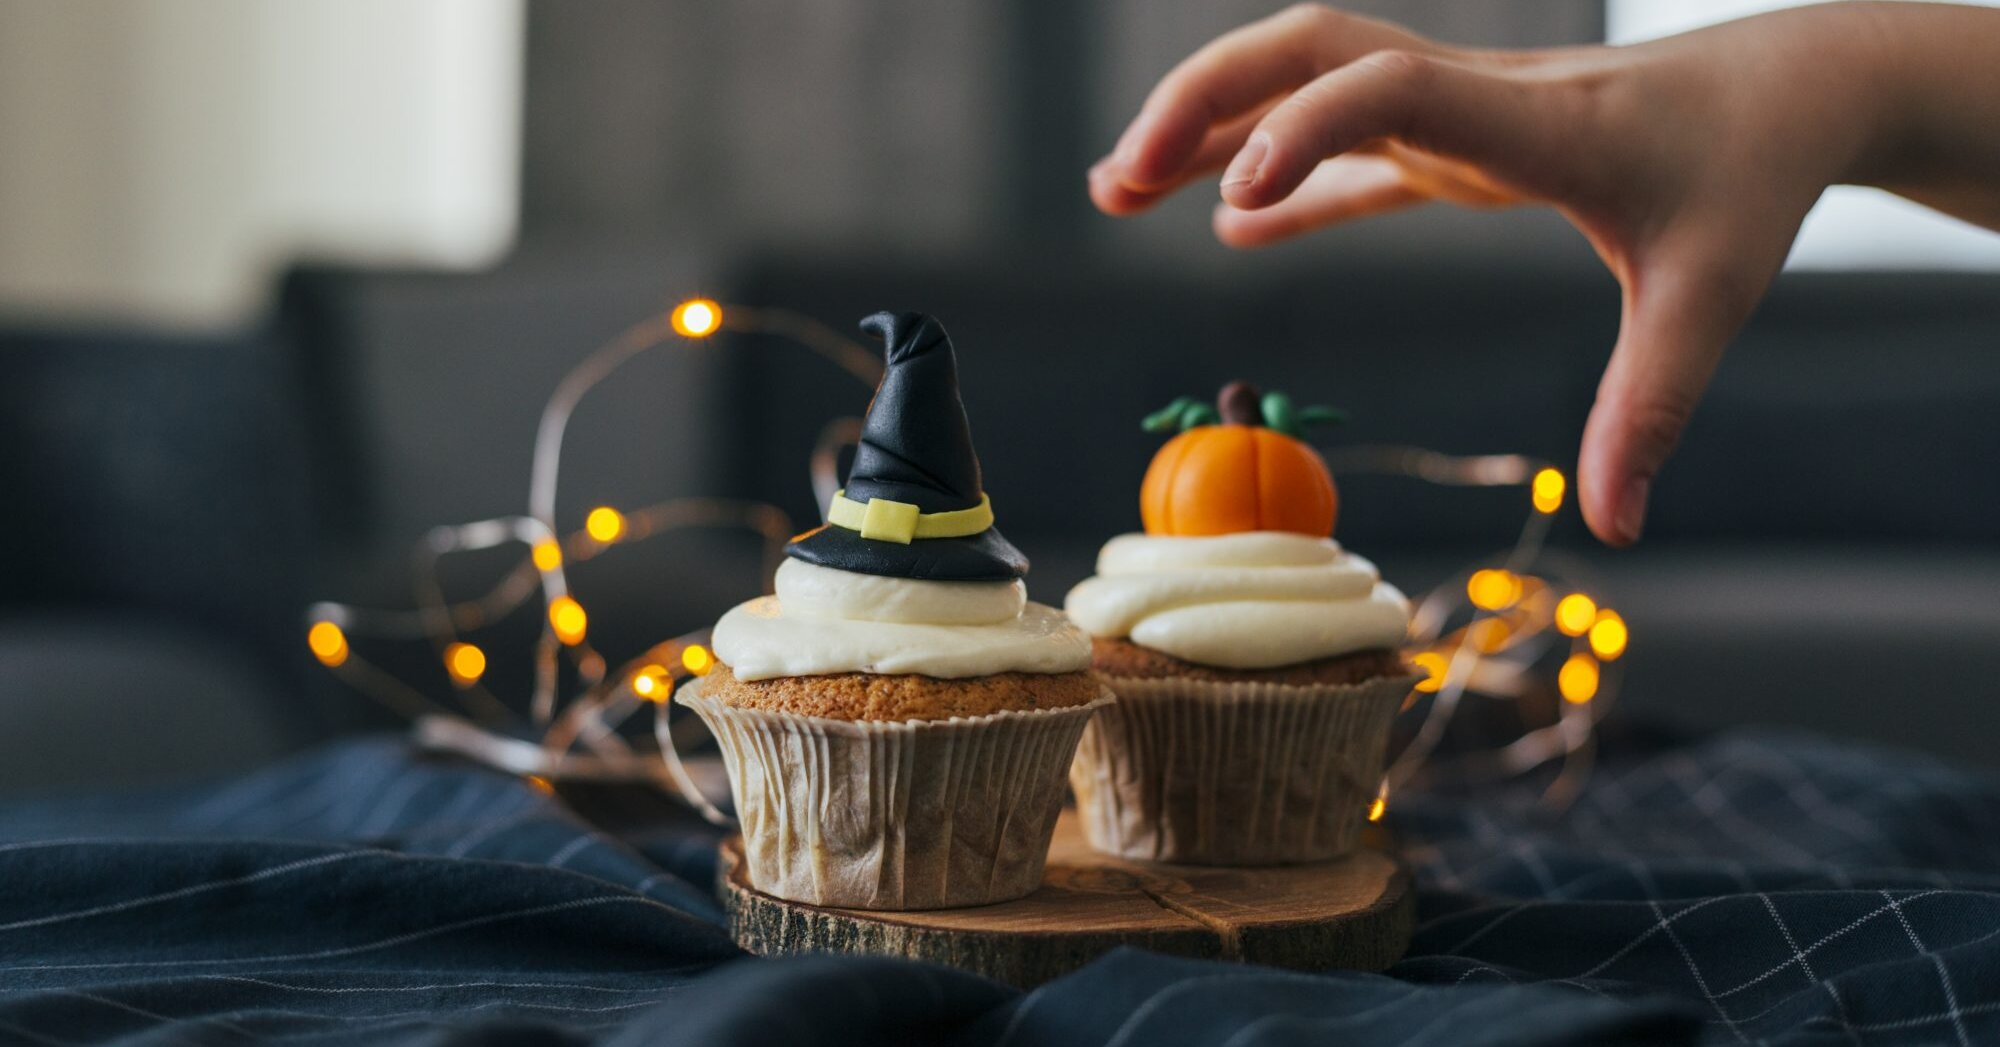 All the Food Discounts and Freebies You Can Get This Halloween